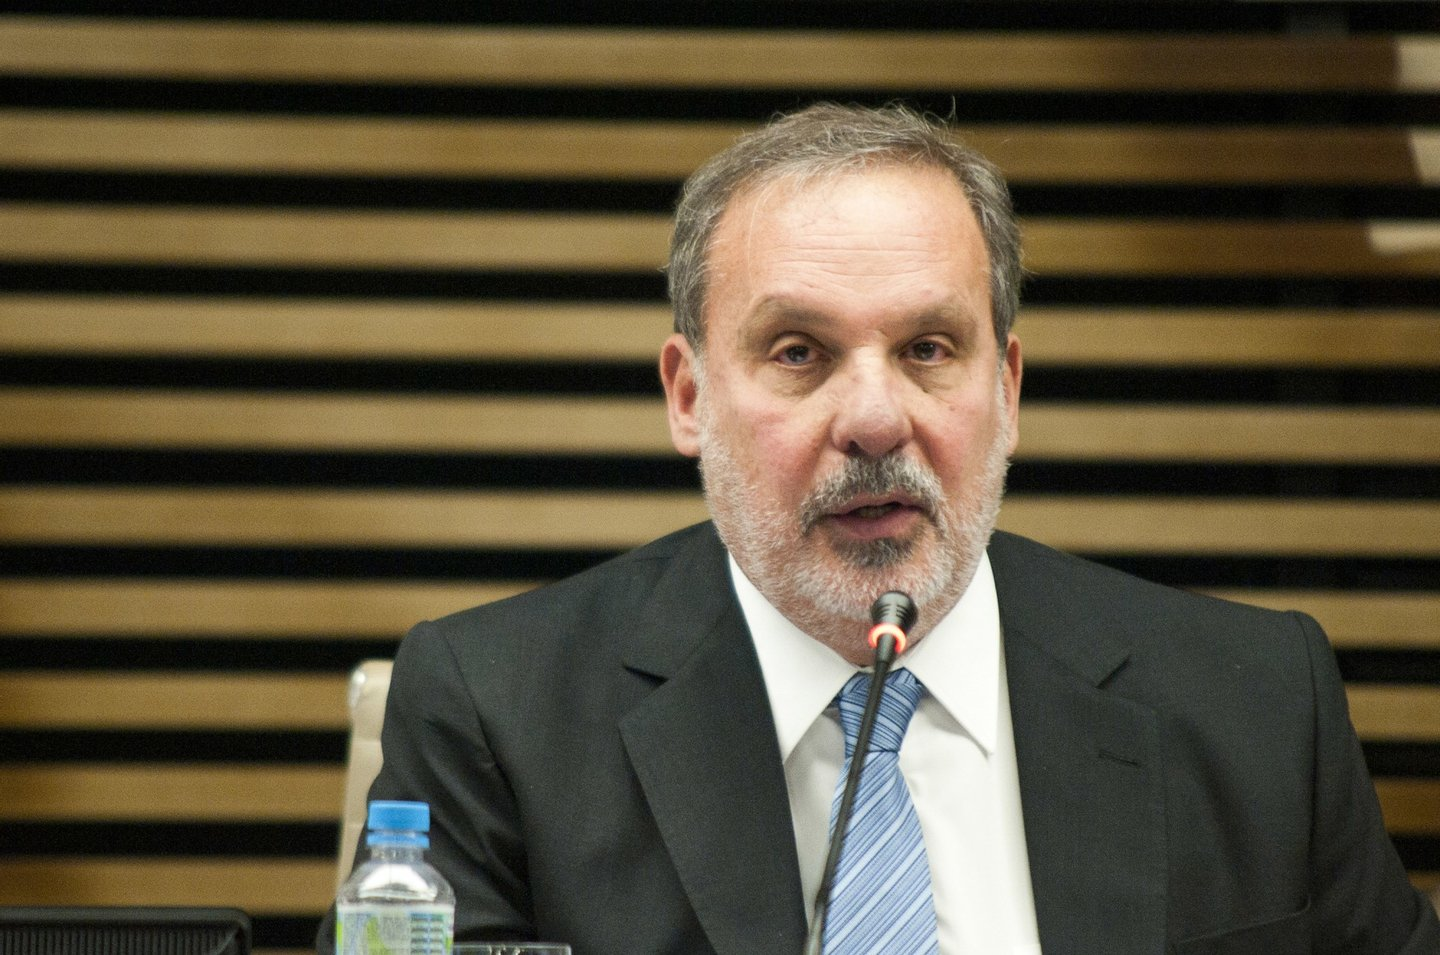 The Minister of Development, Industry and Foreign Trade, Armando Monteiro, during a meeting with the president of the Federation of S��o Paulo State Industries (Fiesp), Paulo Skaf, and former finance minister Antonio Delfim Netto, the Fiesp headquarters on Paulista Avenue on the morning of Tuesday. (Photo by Gabriel Saores /Brazil Photo Press/Pacific Press) (Photo by Pacific Press/Corbis via Getty Images)